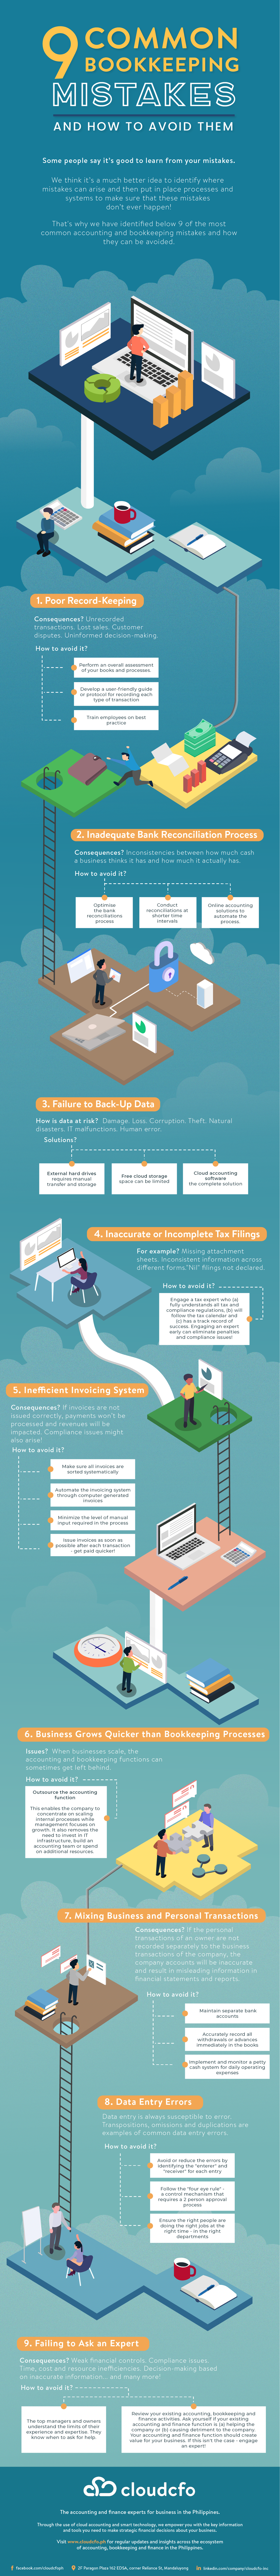 How to avoid 9 of the most common bookkeeping mistakes made by businesses in the Philippines